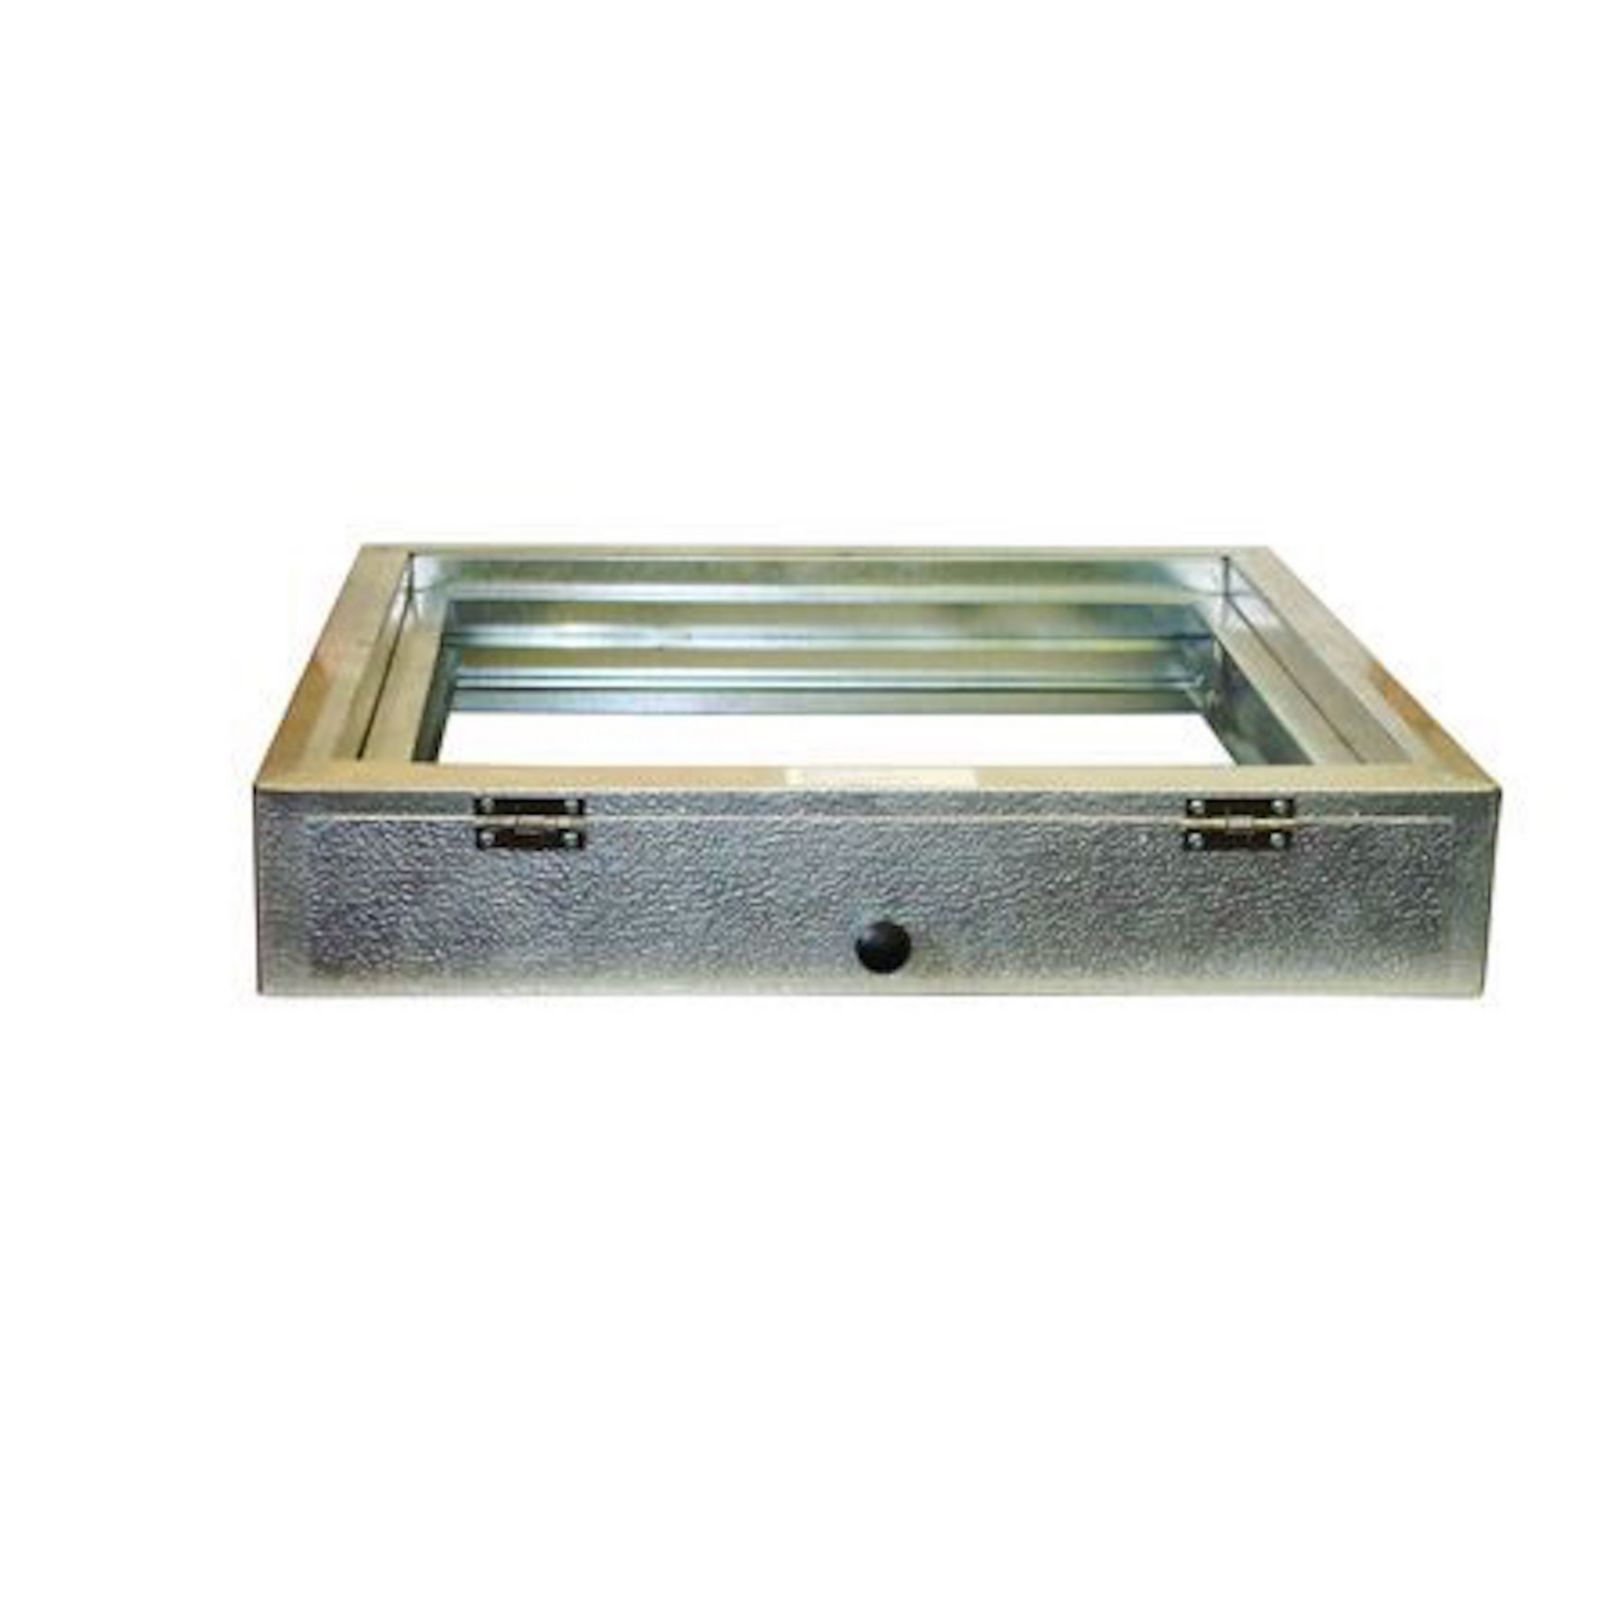 "The Metal Shop 433-230 - 2"" Filter Housing 14.5"" X 22"" For 12"" X 20"" Filter"